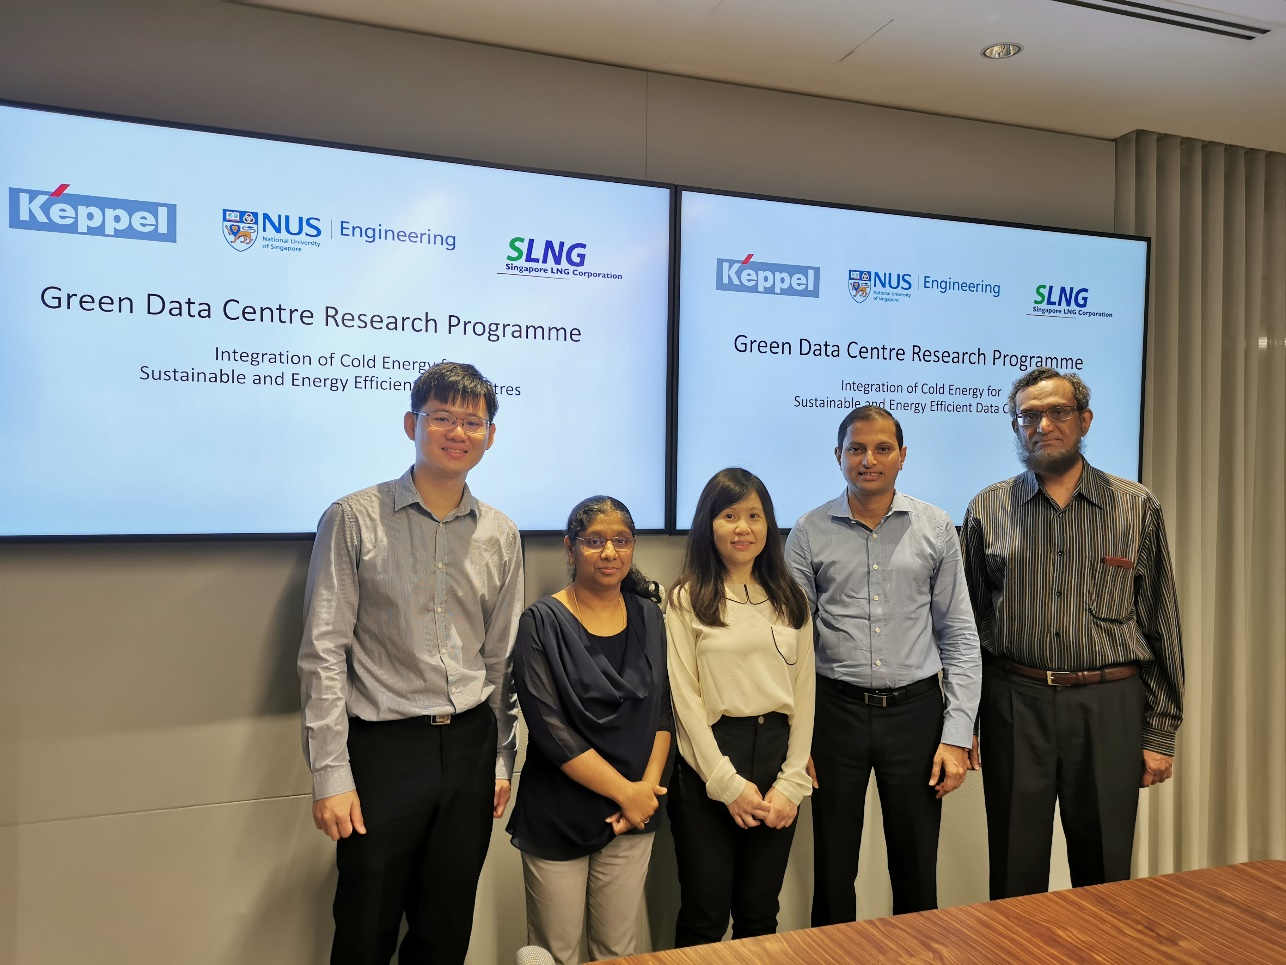 NUS, Keppel And SLNG Join Forces To Develop New Energy-Efficient Cooling Technology For Data Centres